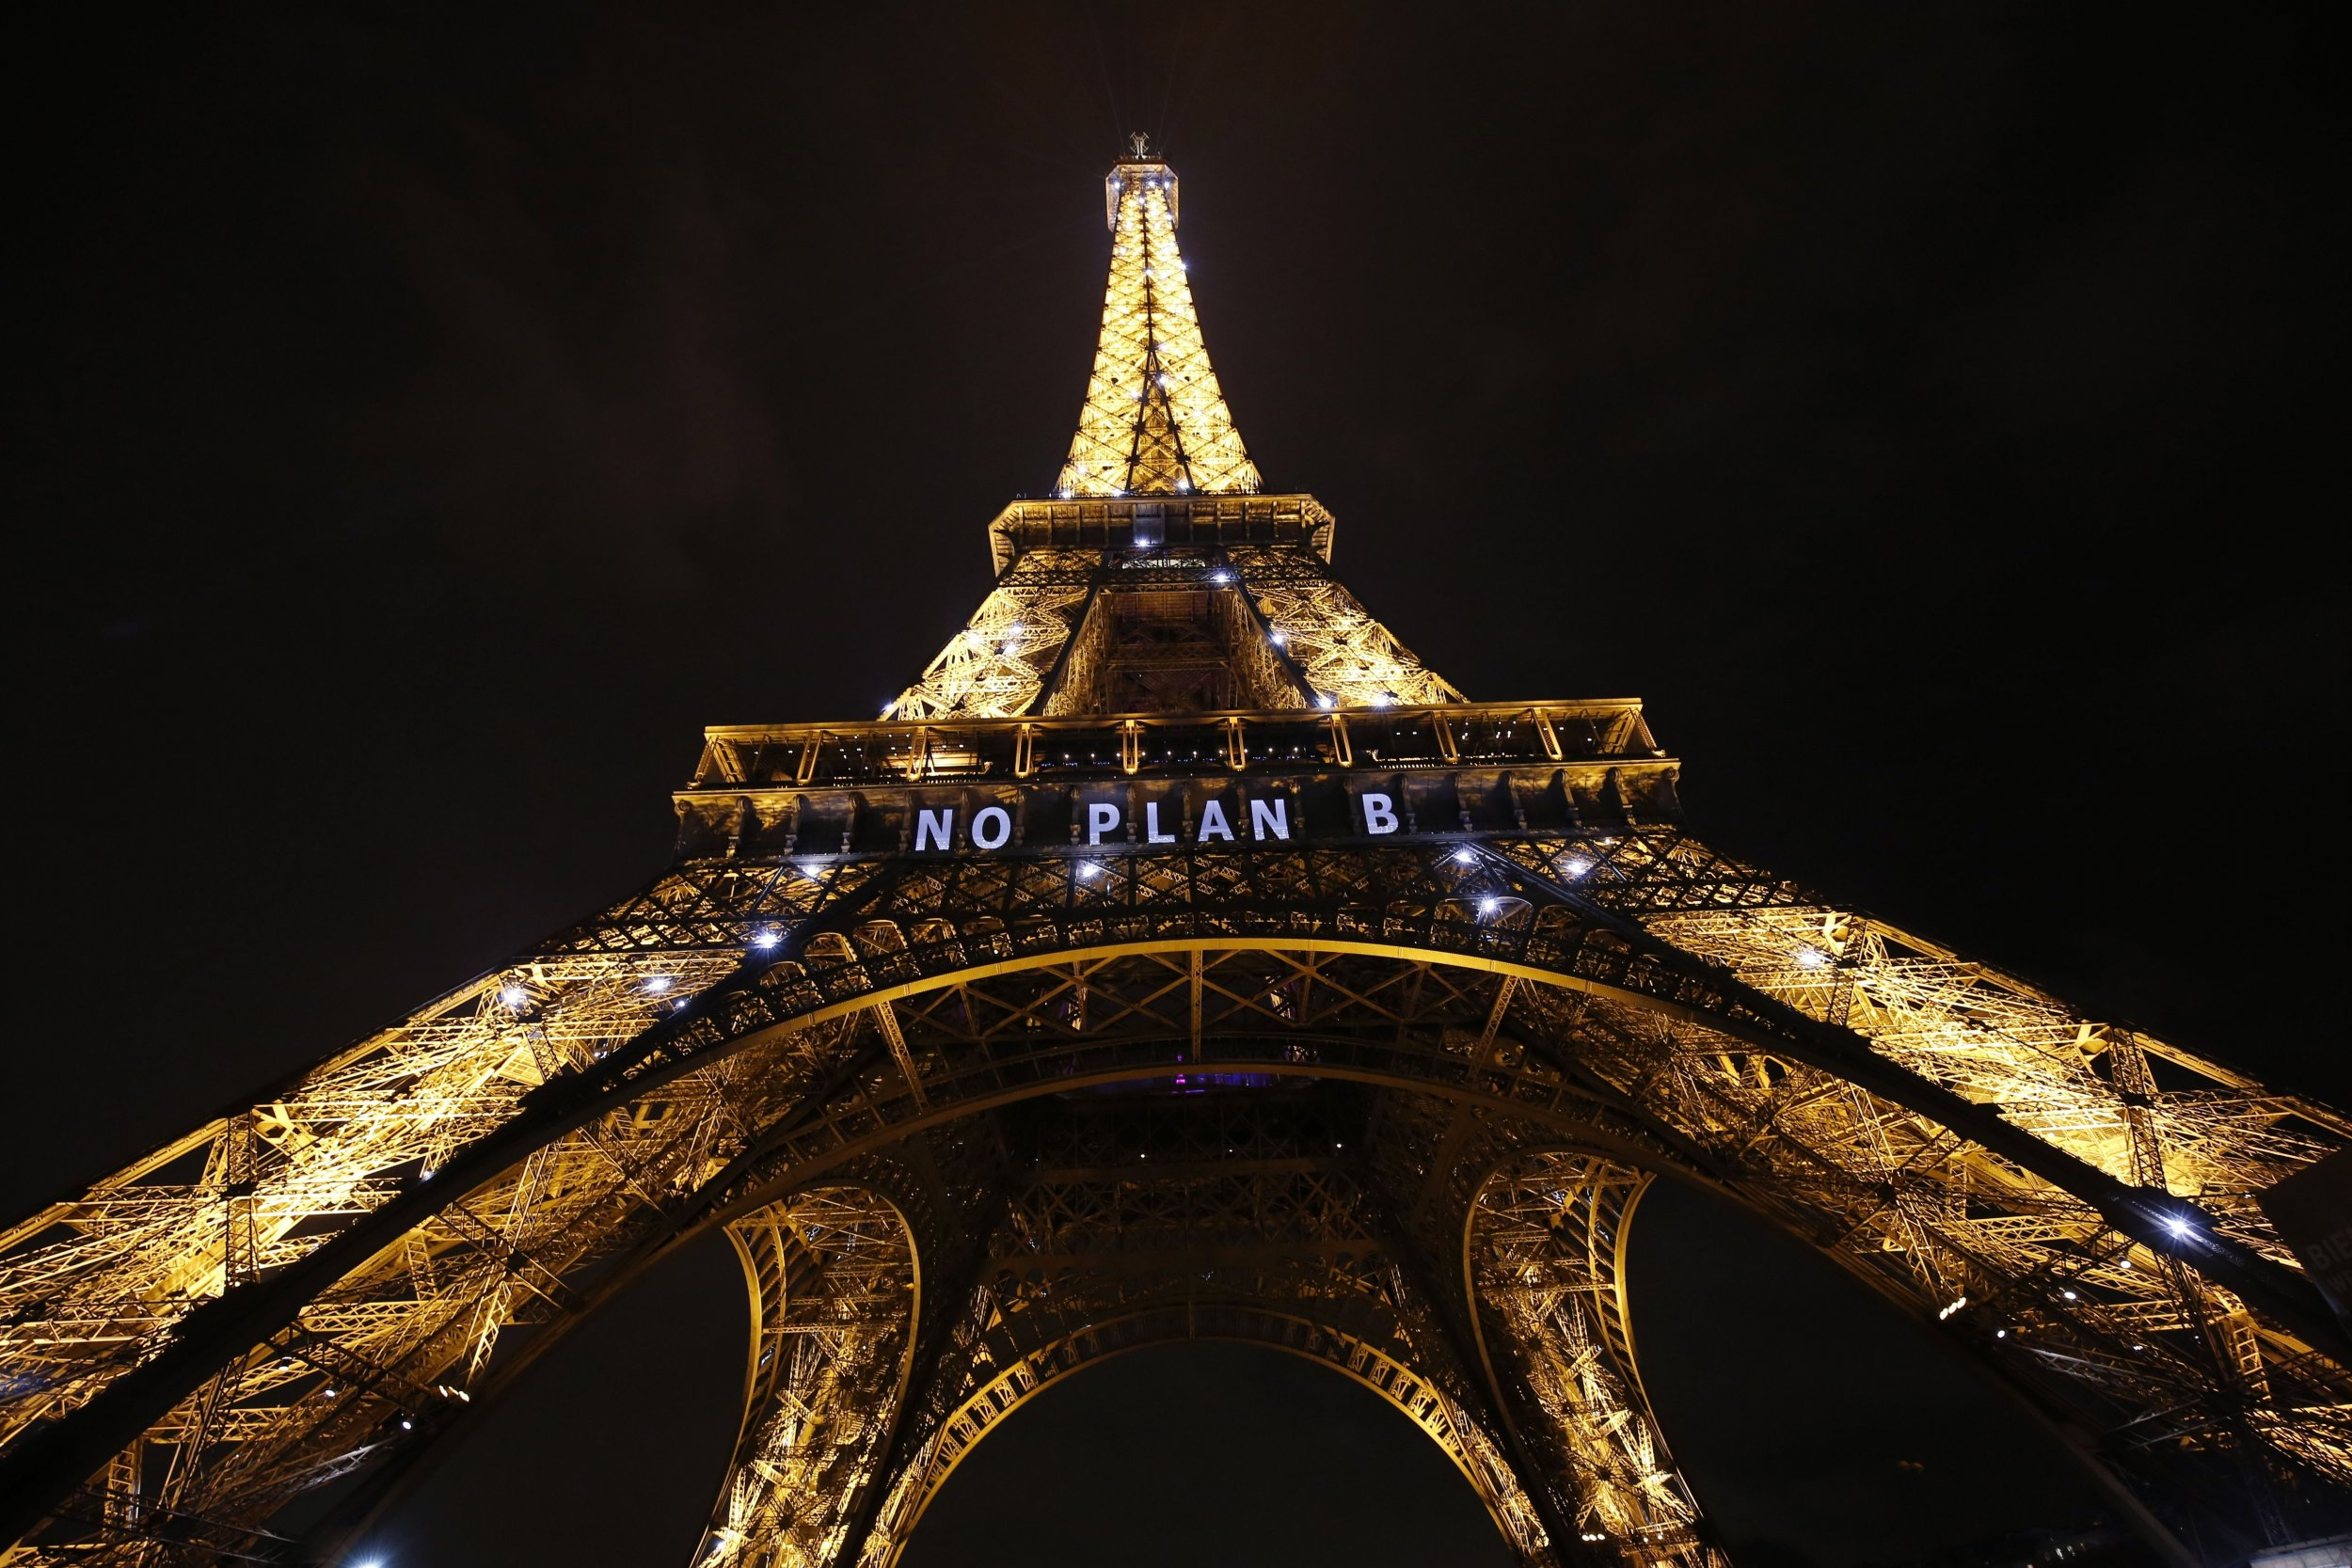 Eiffel Tower climate change